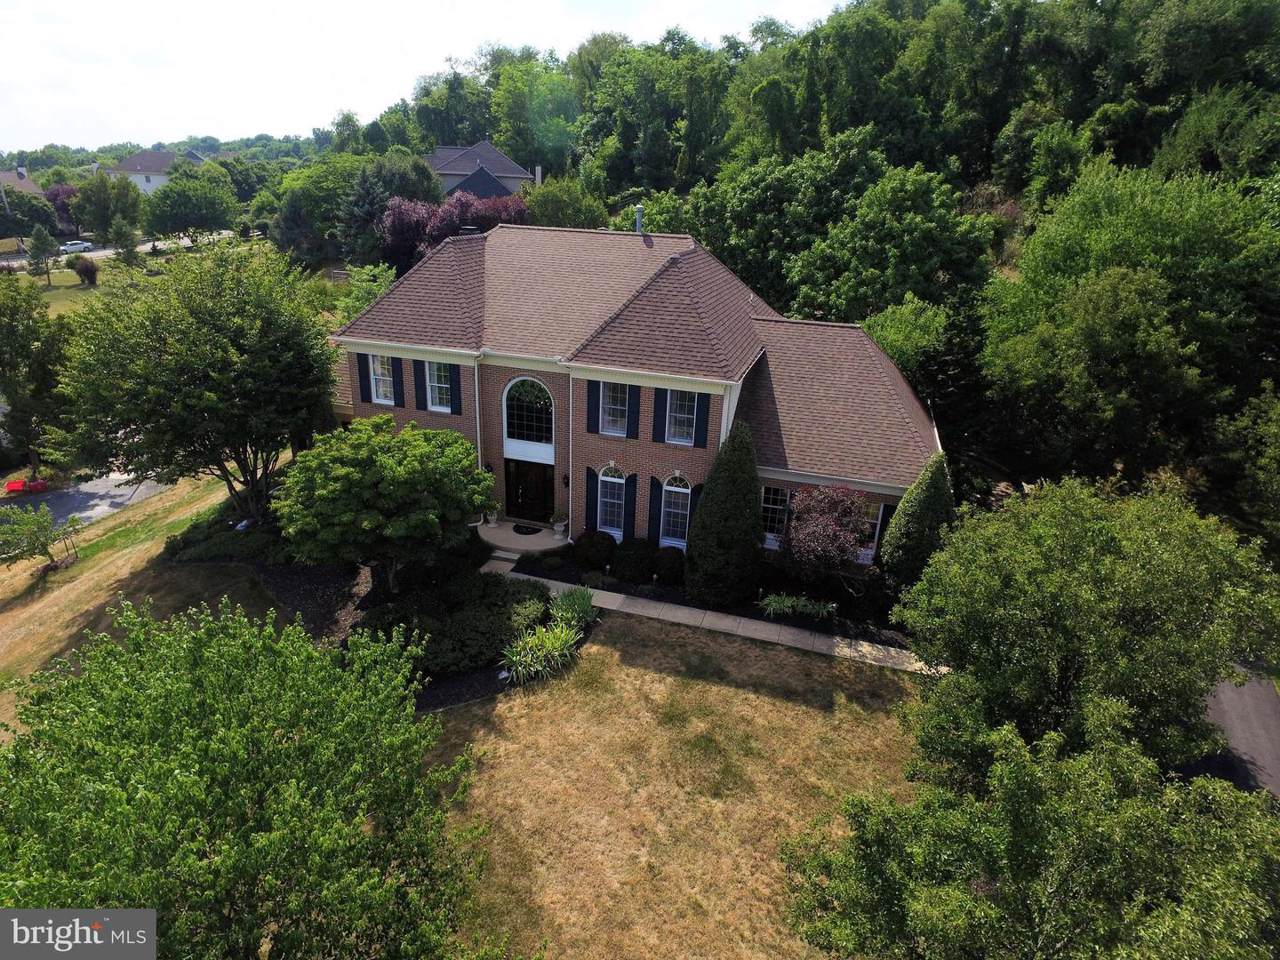 1066 Redtail Road - Photo 1